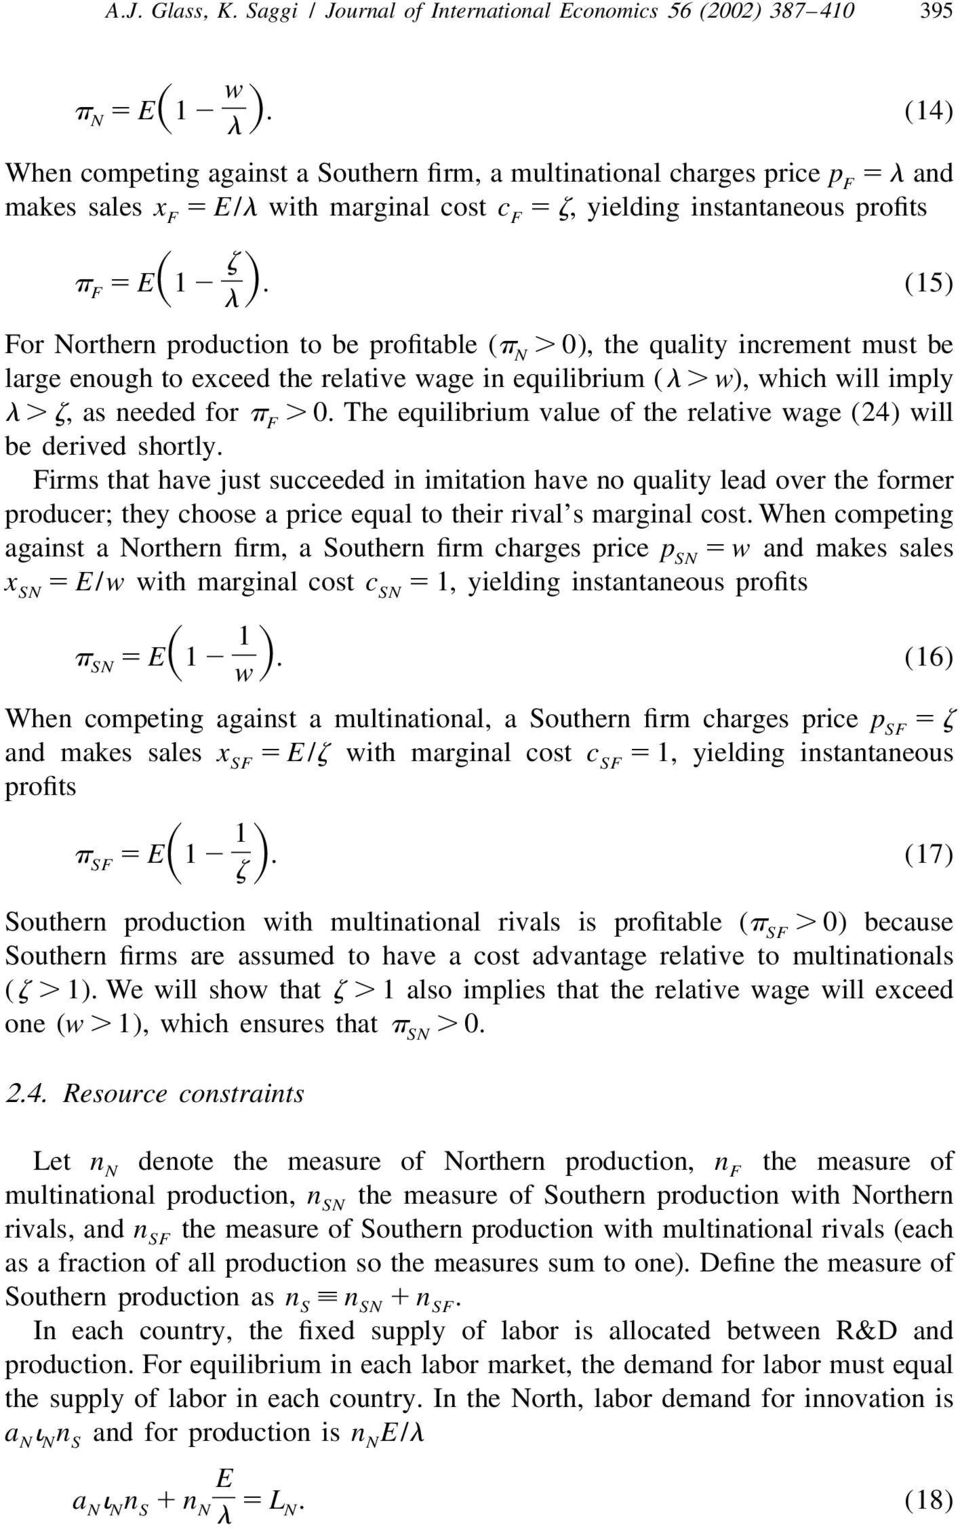 (15) For Northern production to be profitabe (p N. 0), the quaity increment must be arge enough to exceed the reative wage in equiibrium (. w), which wi impy. z, as needed for p F. 0. The equiibrium vaue of the reative wage (24) wi be derived shorty.